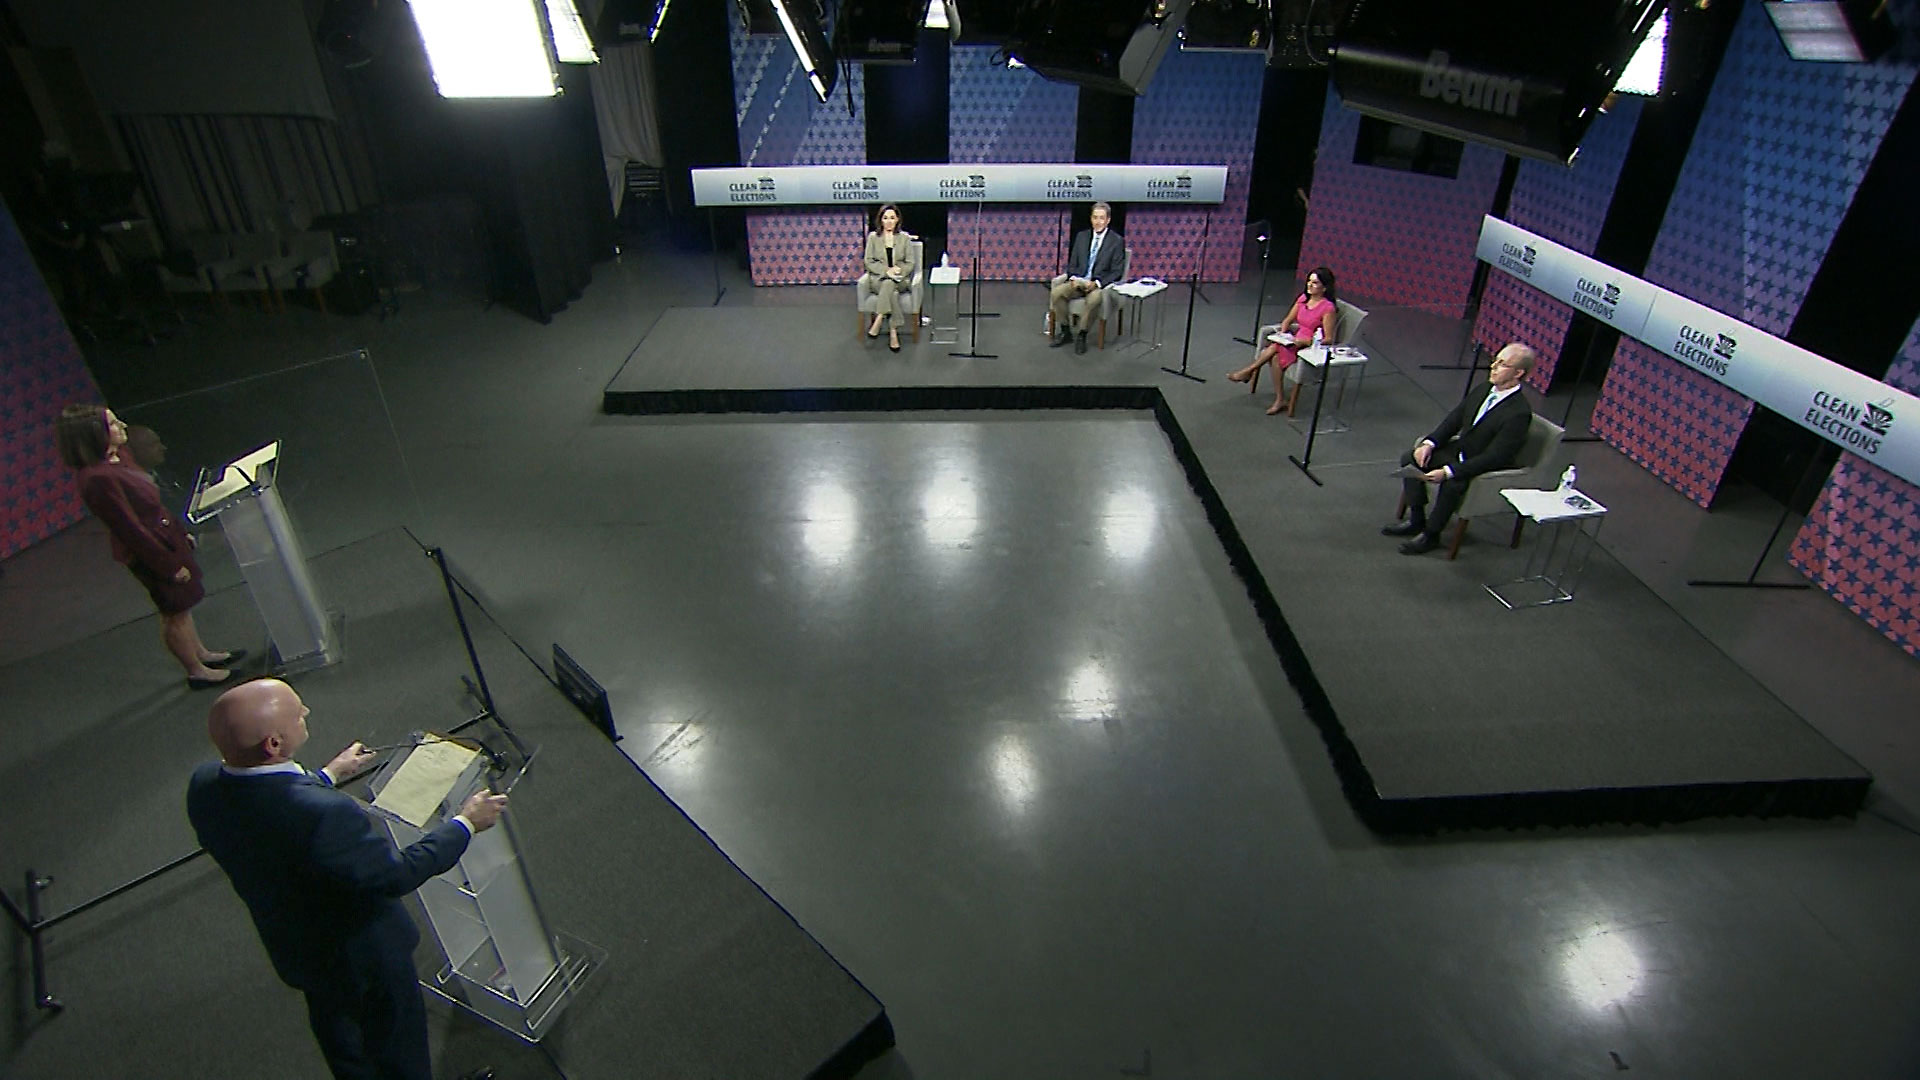 An image from the broadcast of the U.S. Senate debate between Sen. Martha McSally (R) and Mark Kelly (D) at Arizona PBS on Oct. 6, 2020.